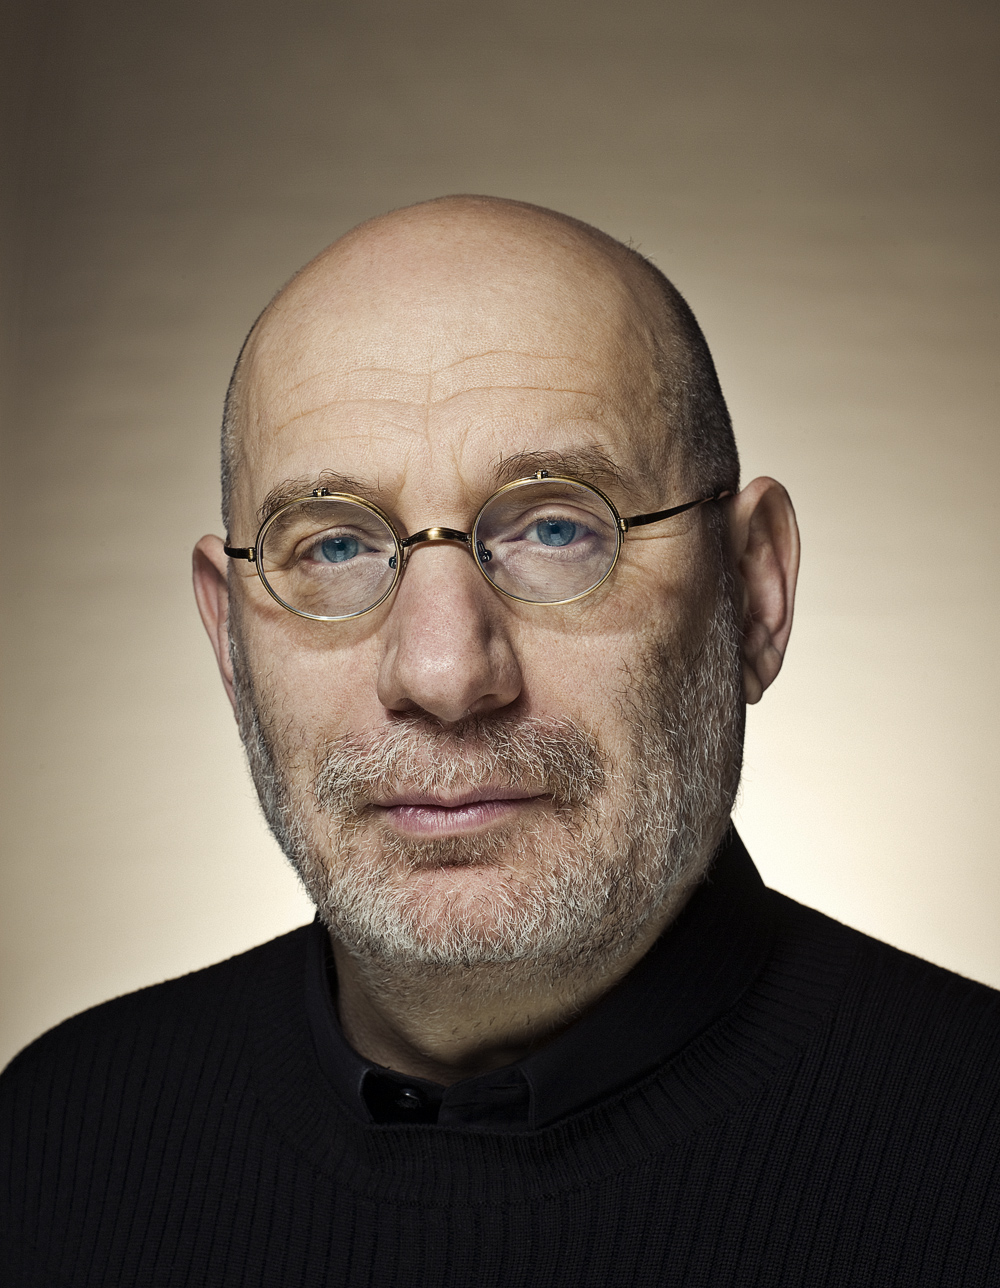 TALK: BORIS AKUNIN